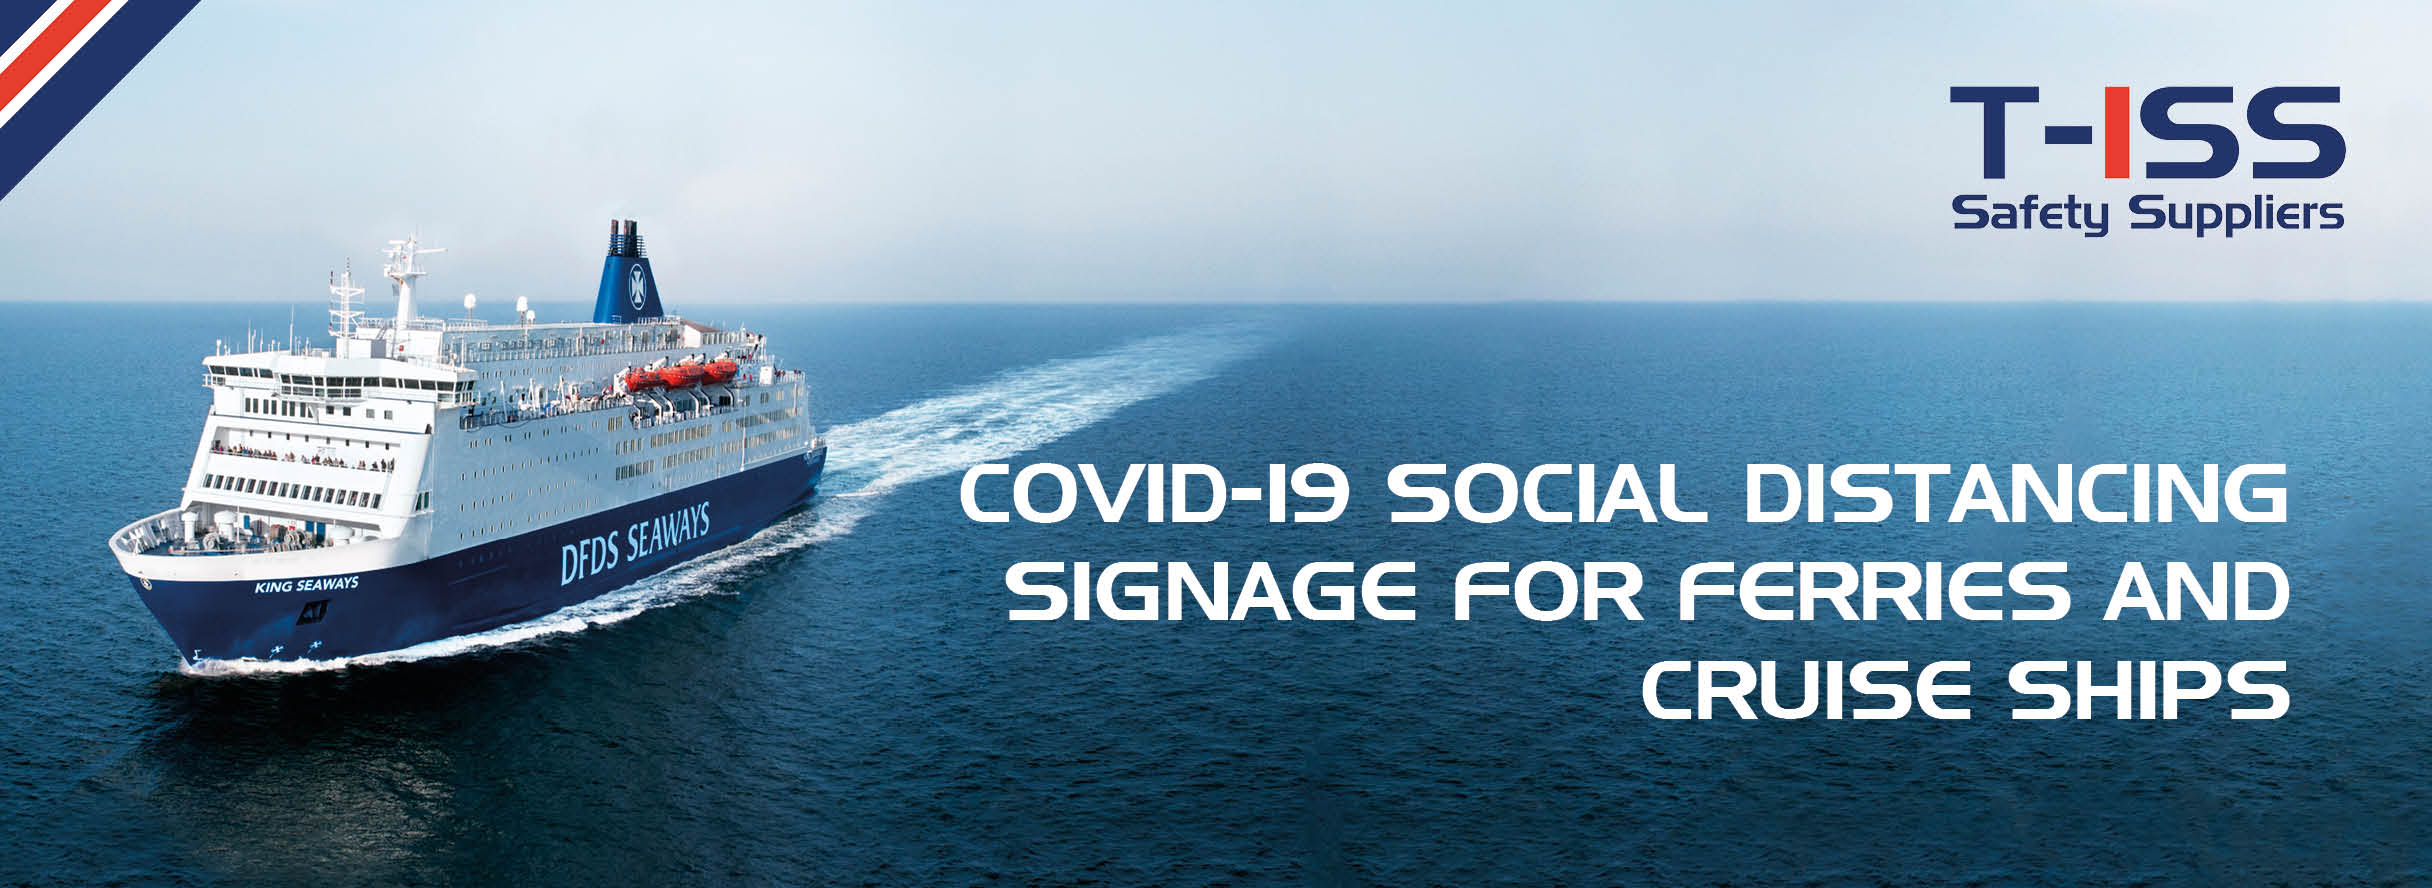 Social Distancing signage COVID-19 by T-ISS Safety Suppliers